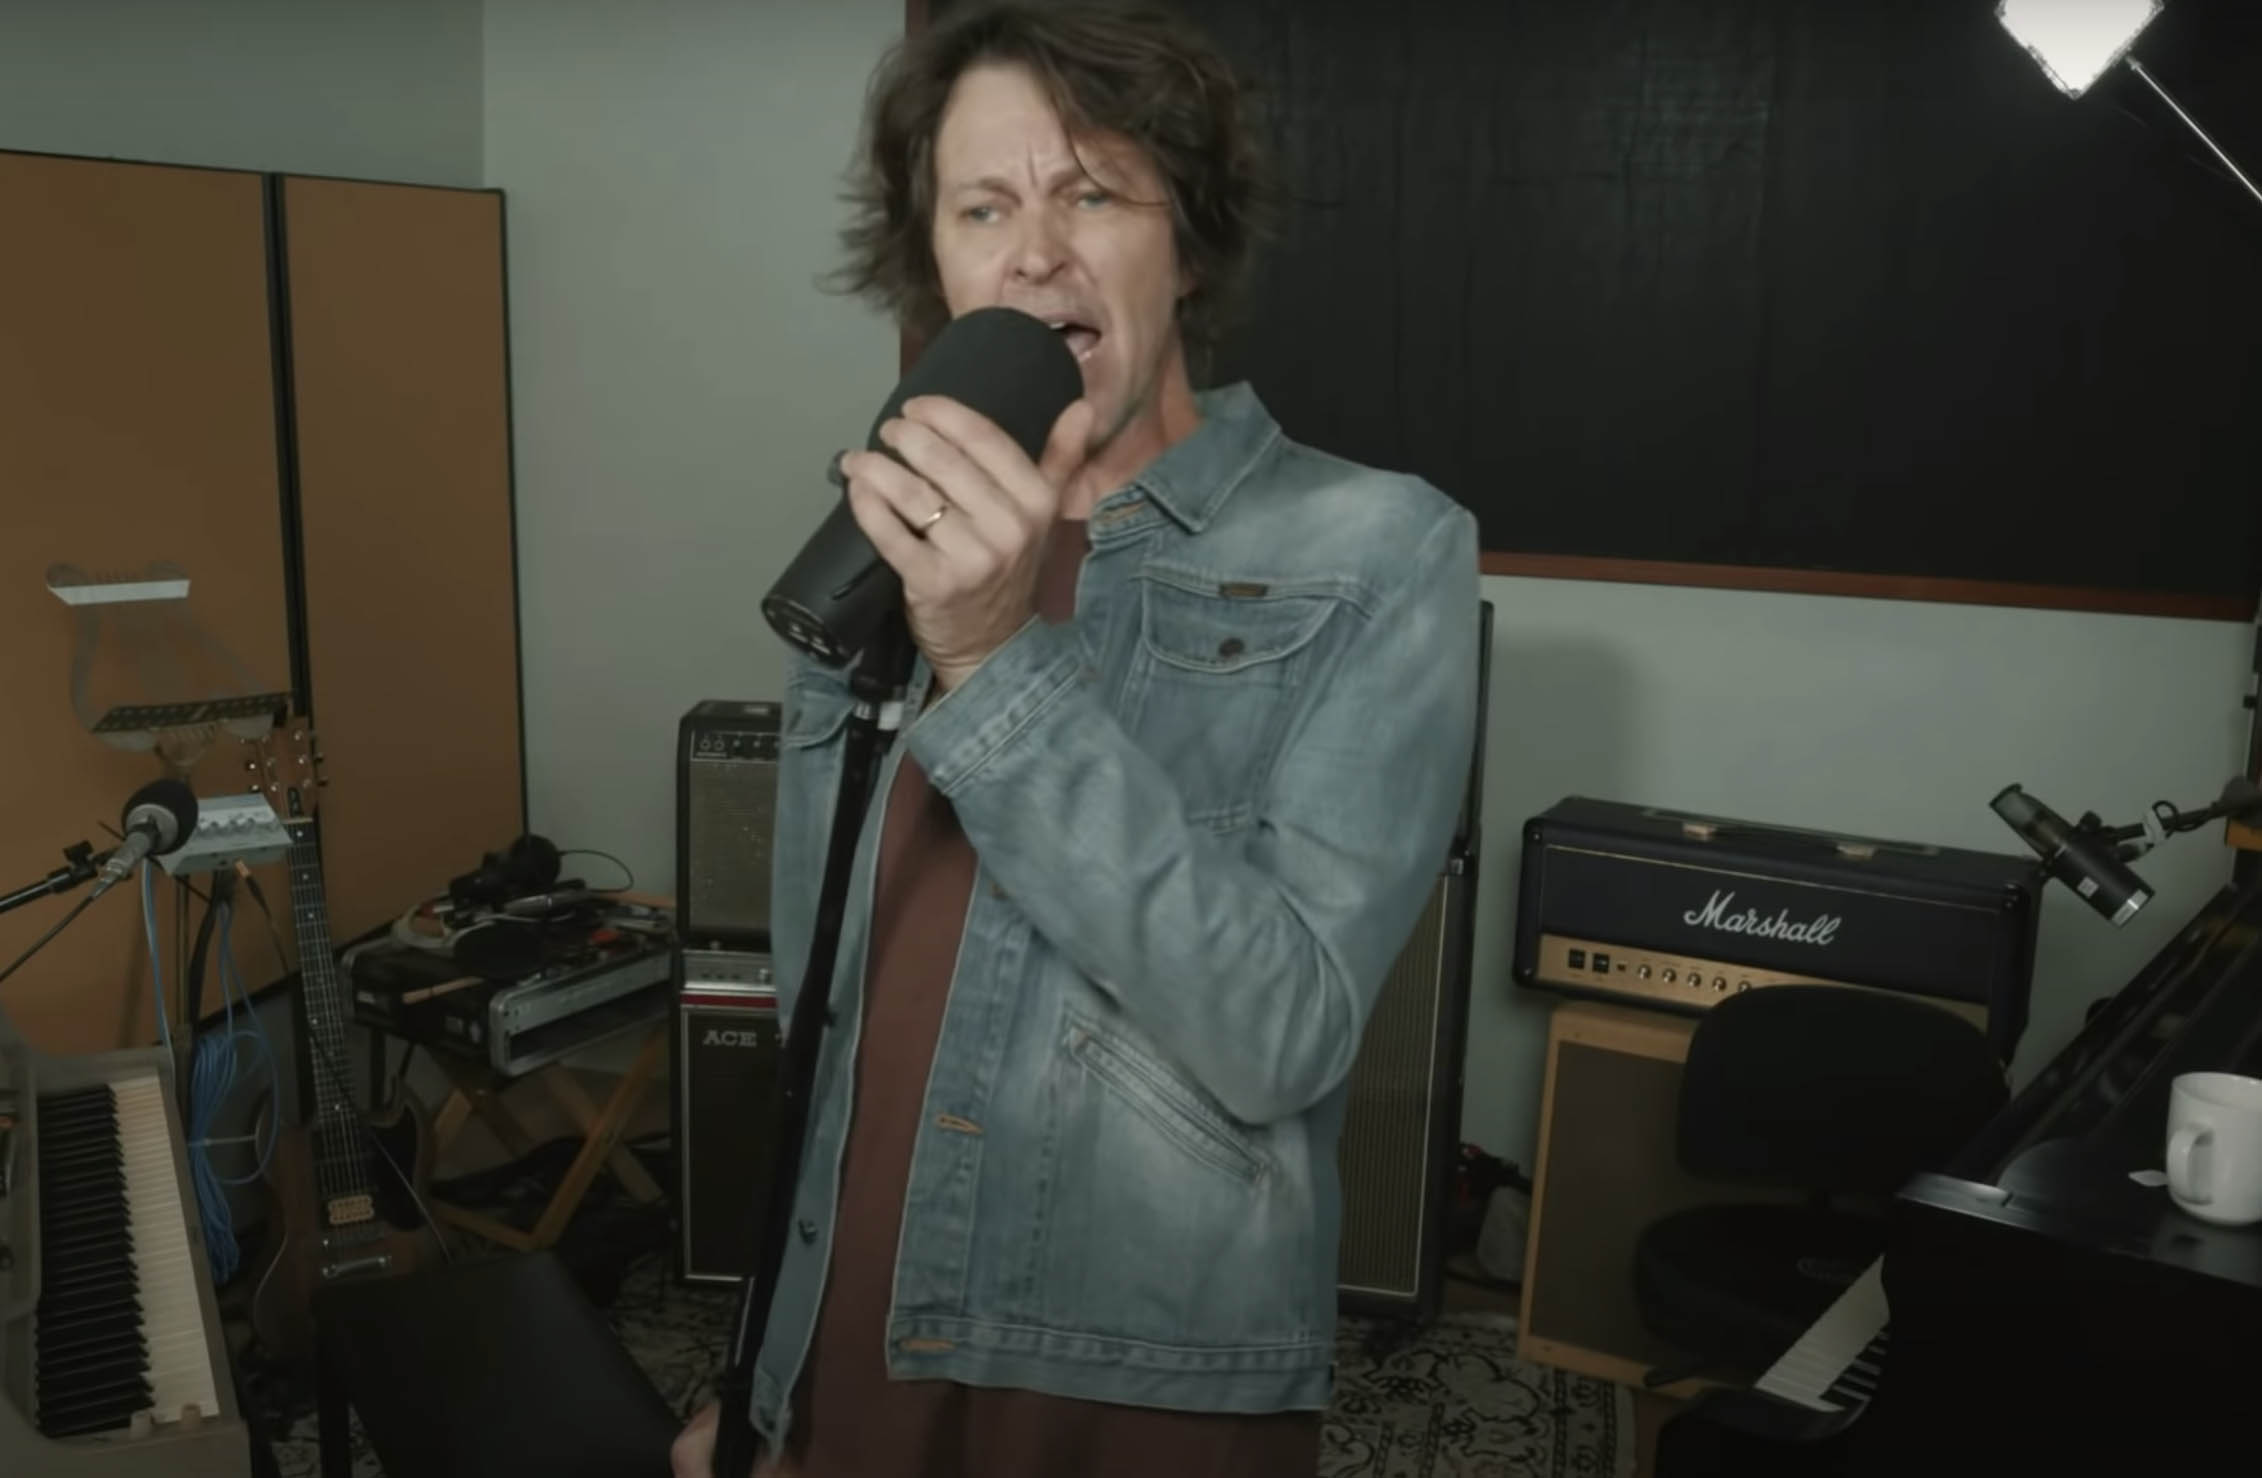 'We Are So Overwhelmed': A LOT Of People Have Watched Powderfinger's Reunion Gig